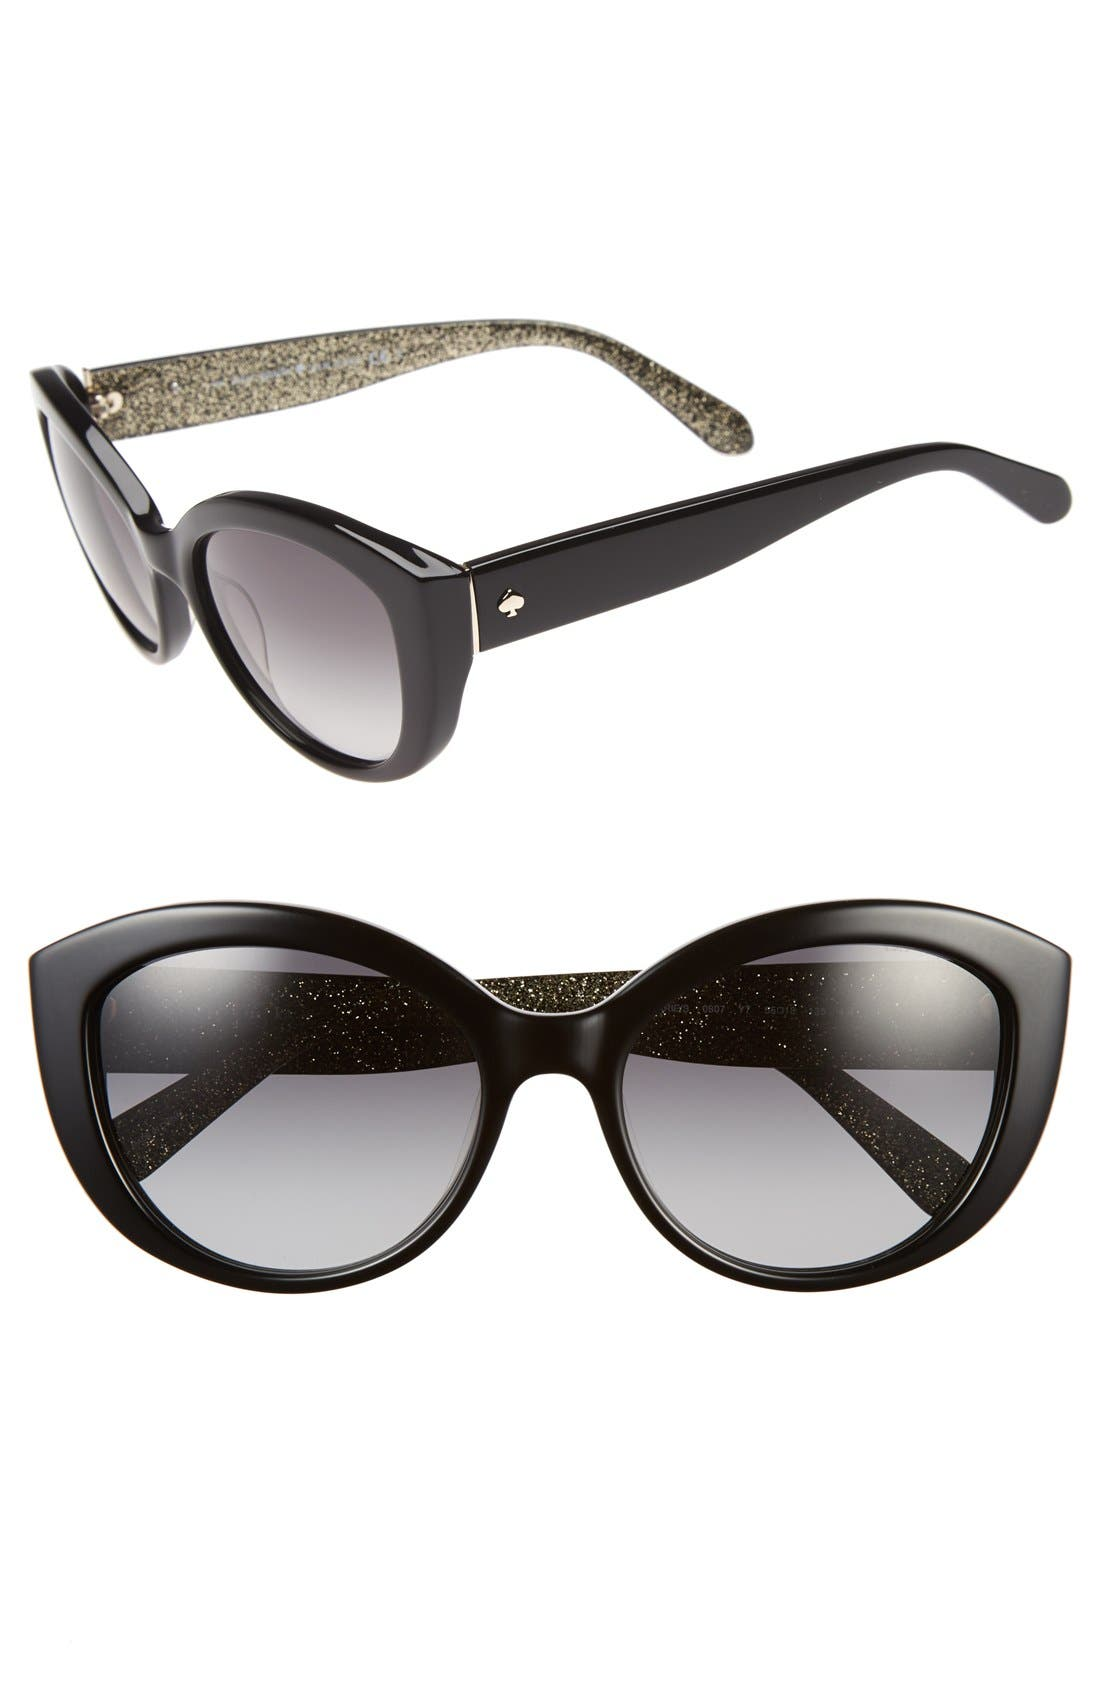 Main Image - kate spade new york 'sherrie' 55mm cat eye sunglasses